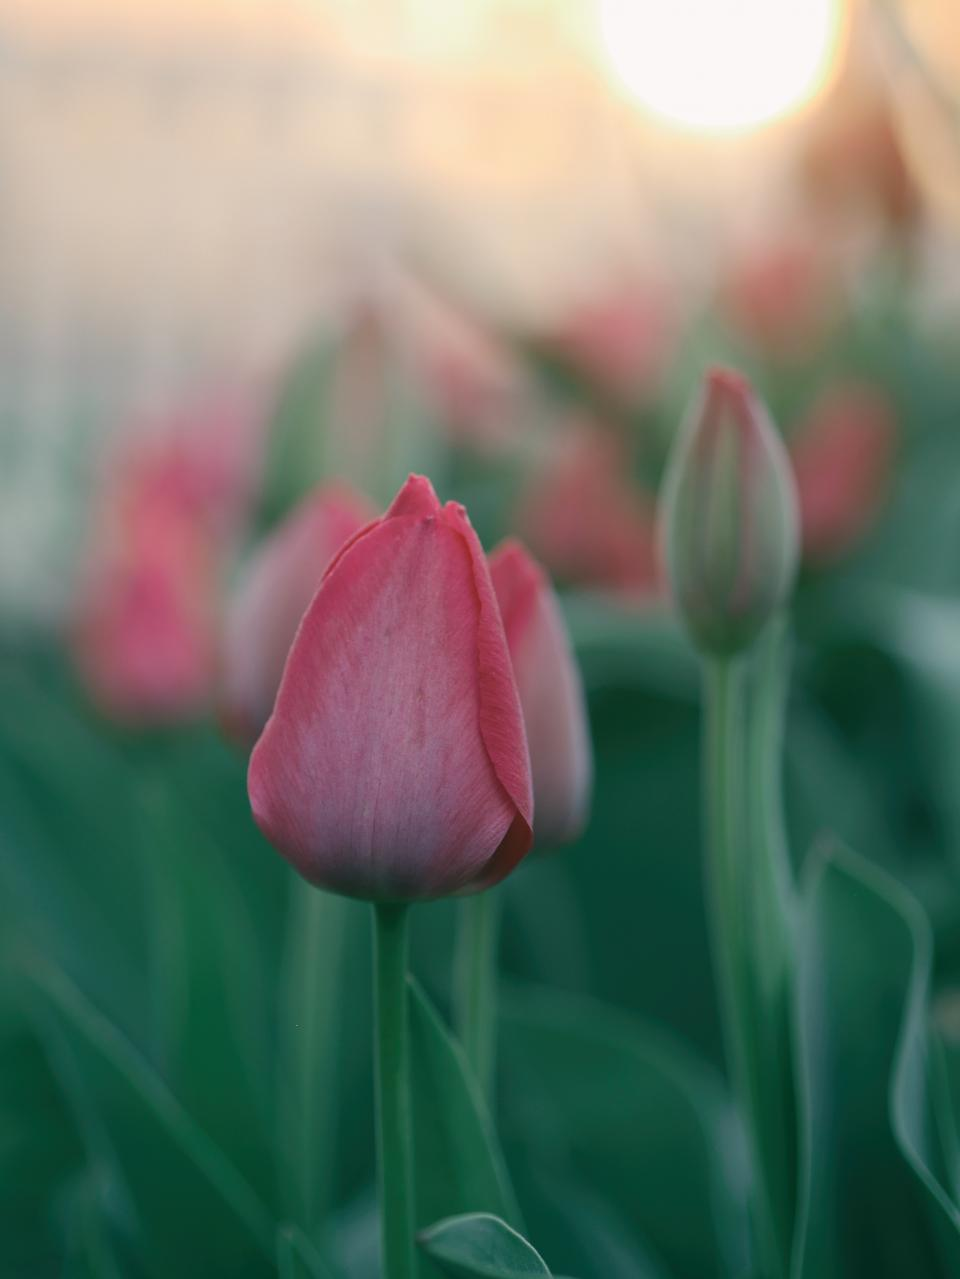 flowers, nature, blossoms, branches, bed, field, stems, stalk, pink, petals, leaves, bokeh, outdoors, garden, sky, sun, light